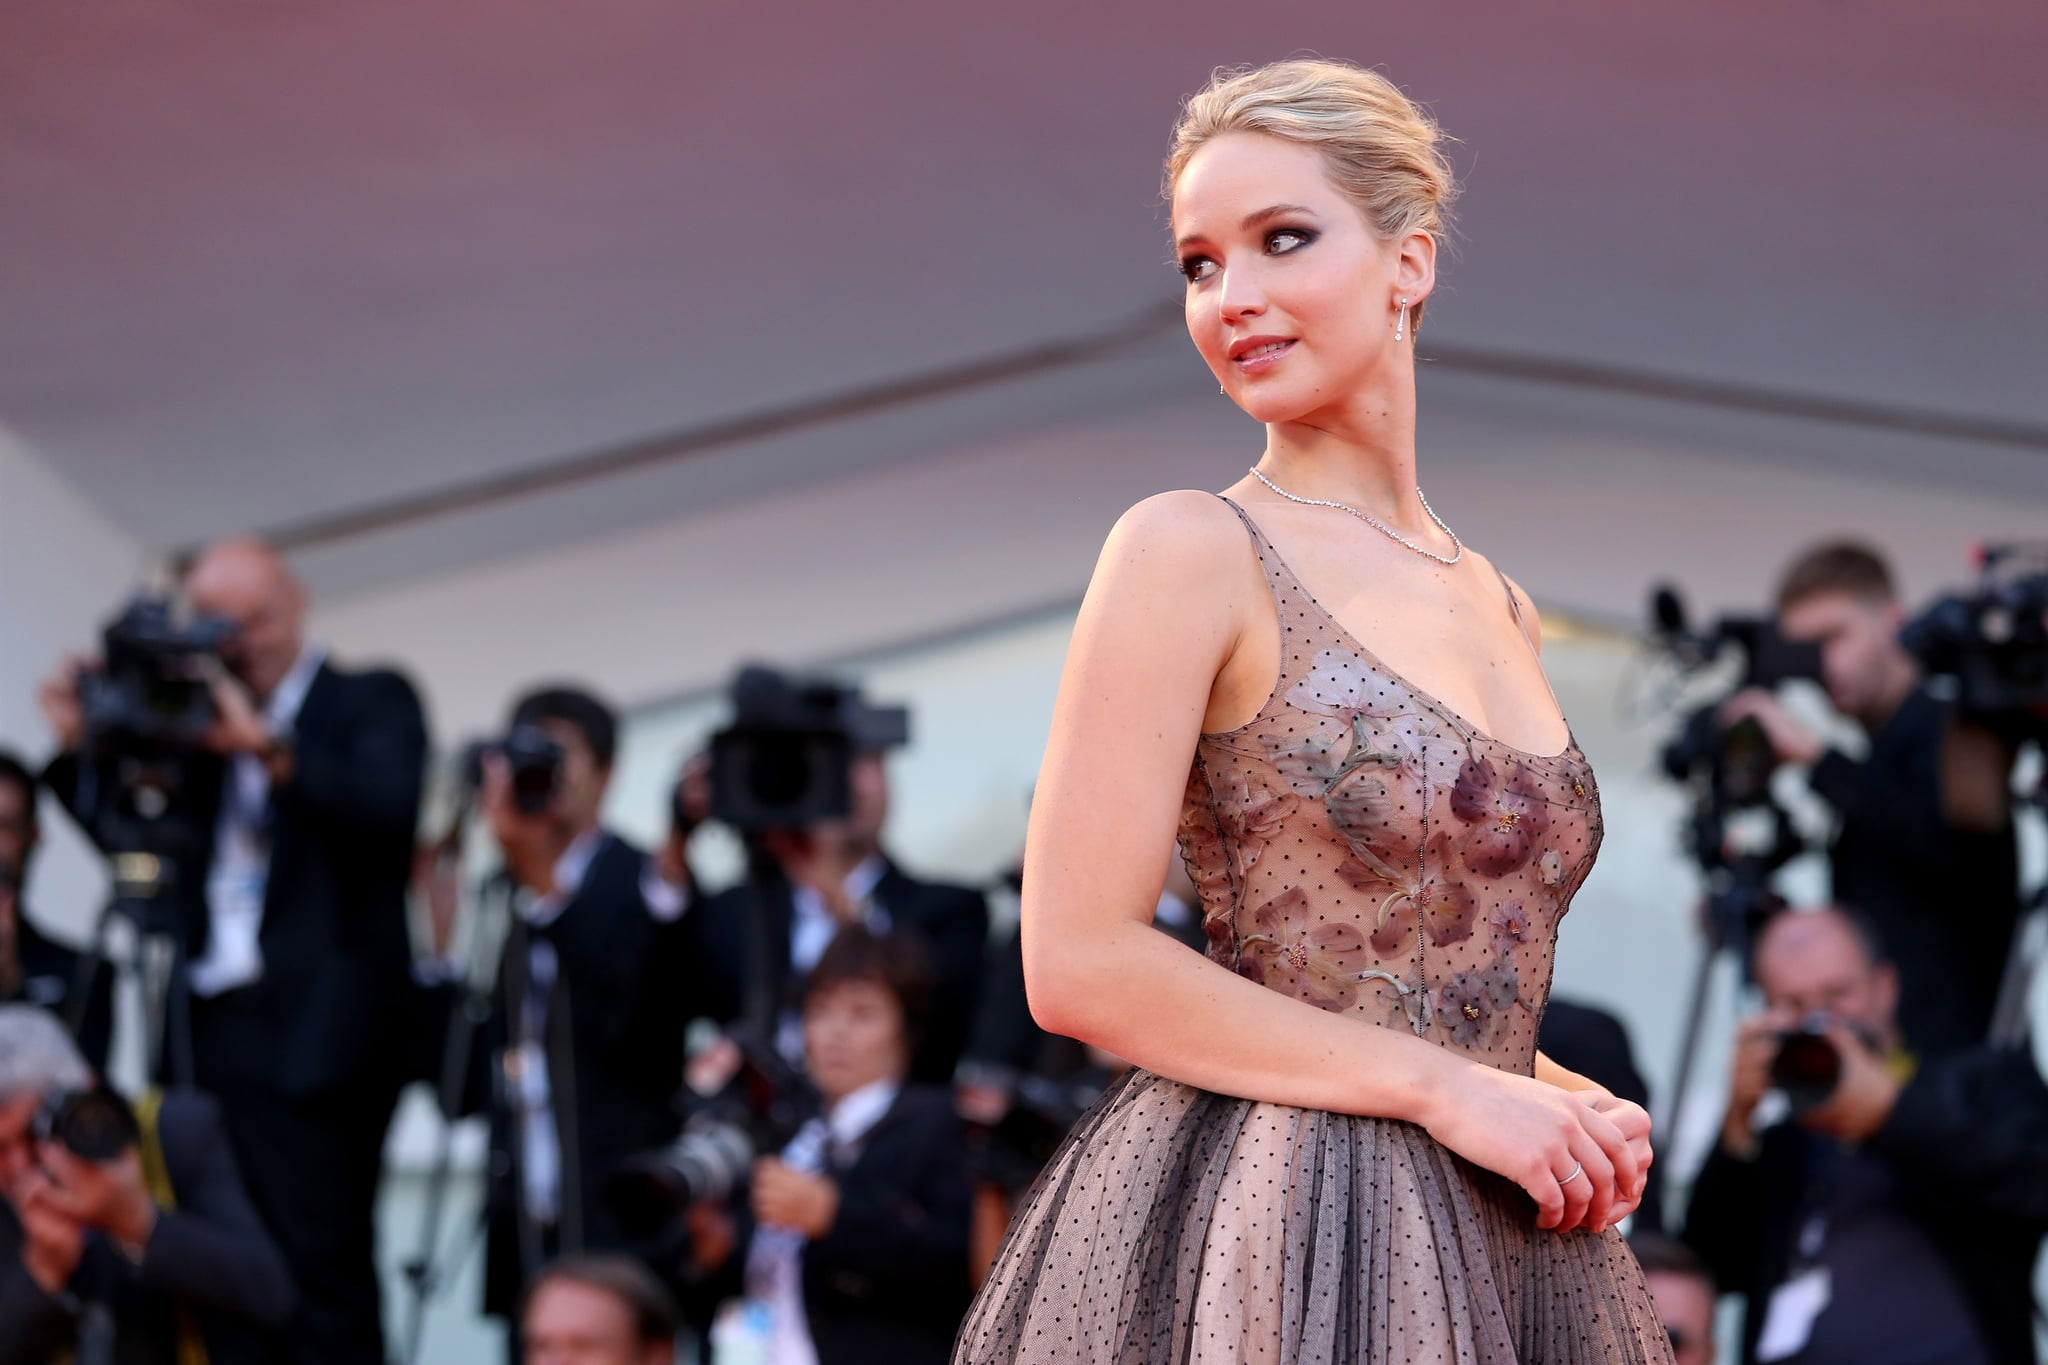 What? Jennifer Lawrence could have played Serena on Gossip girl